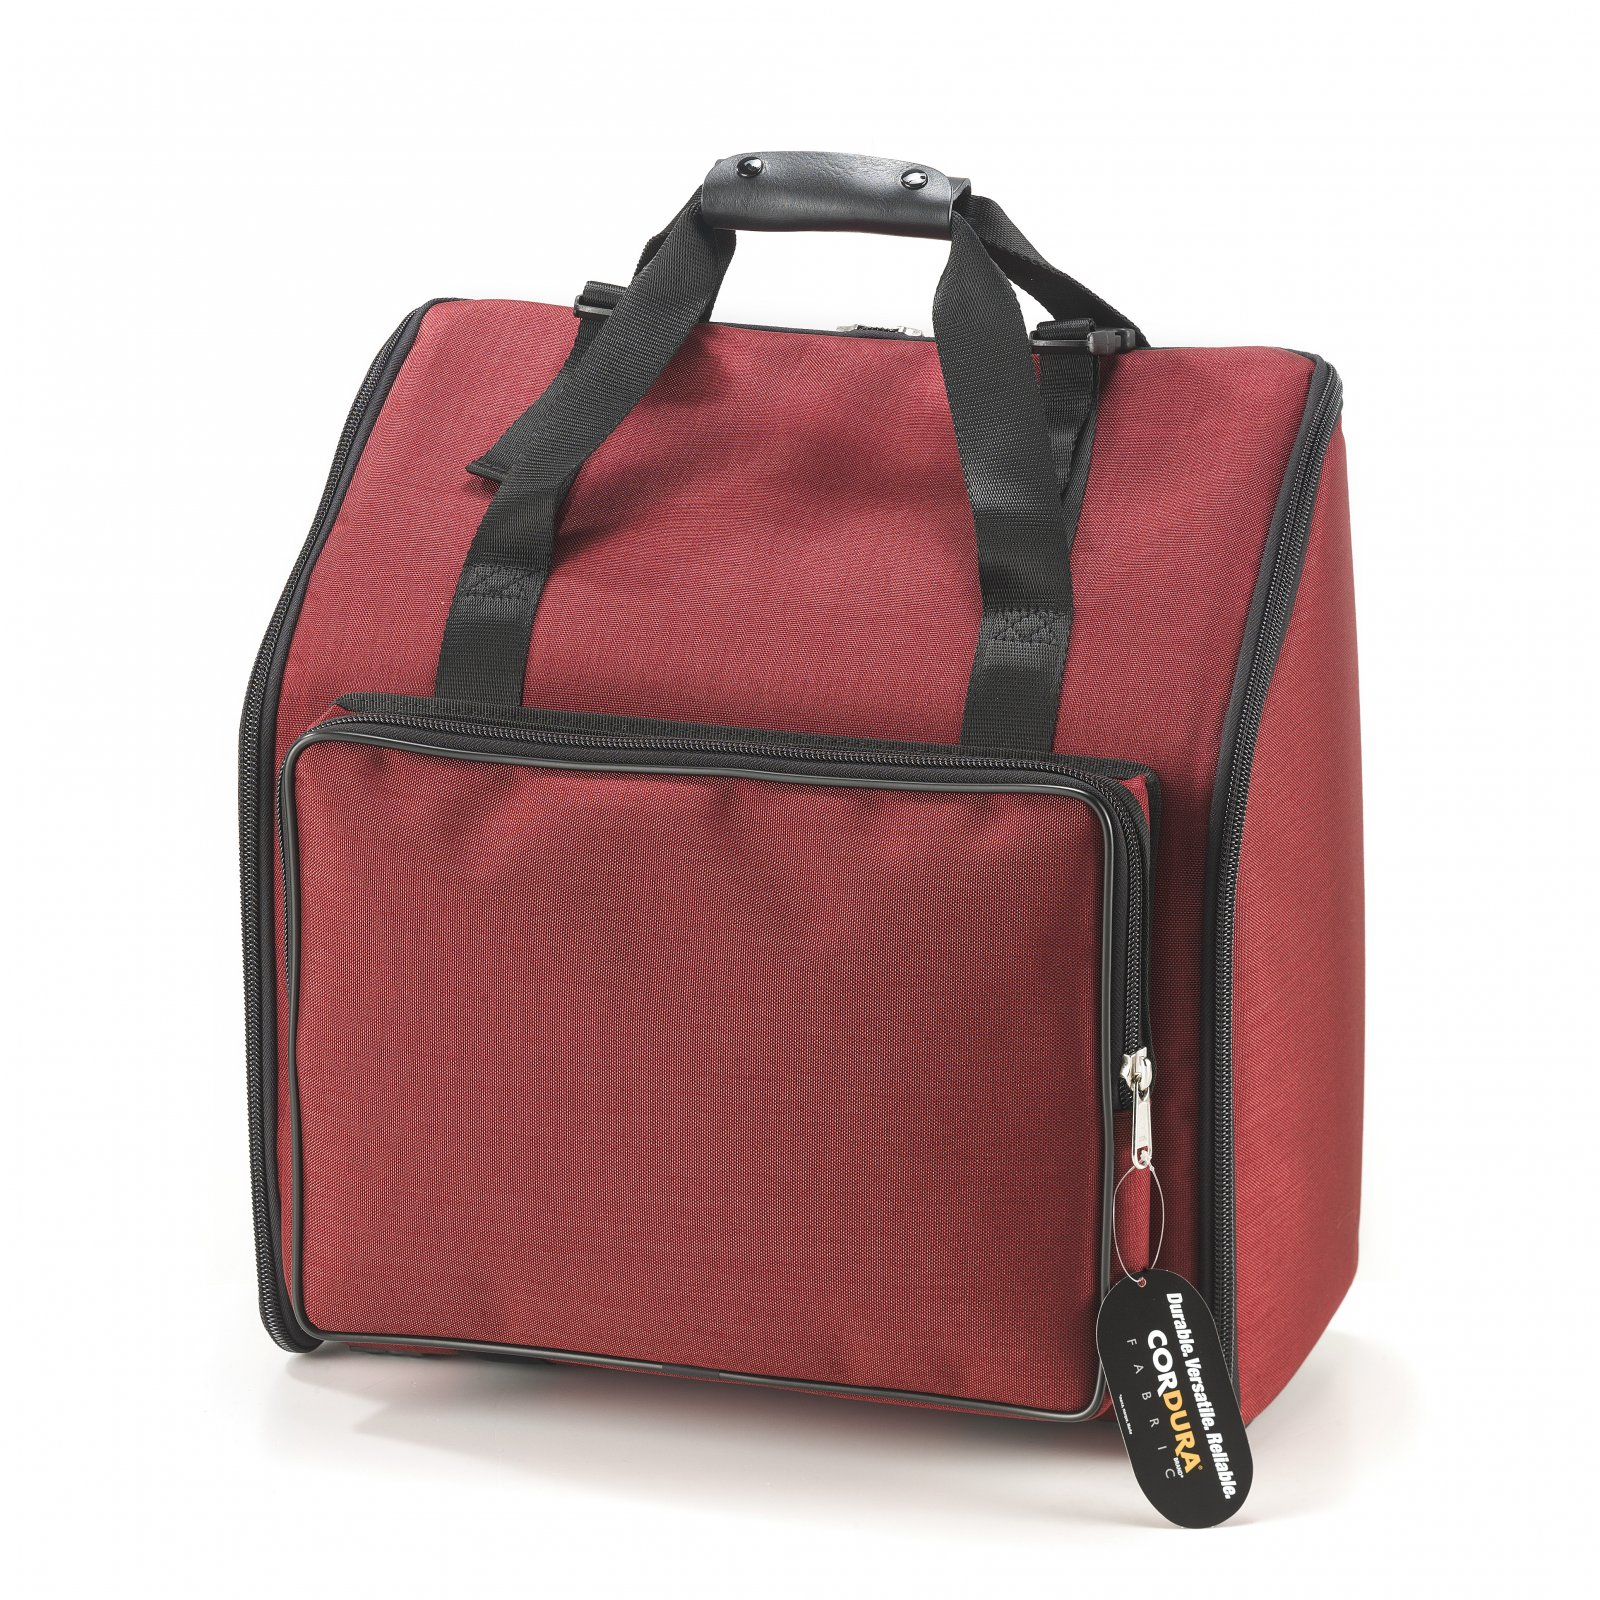 NEW Red Fuselli Gig Bag for Accordion 20 x 18 x 9